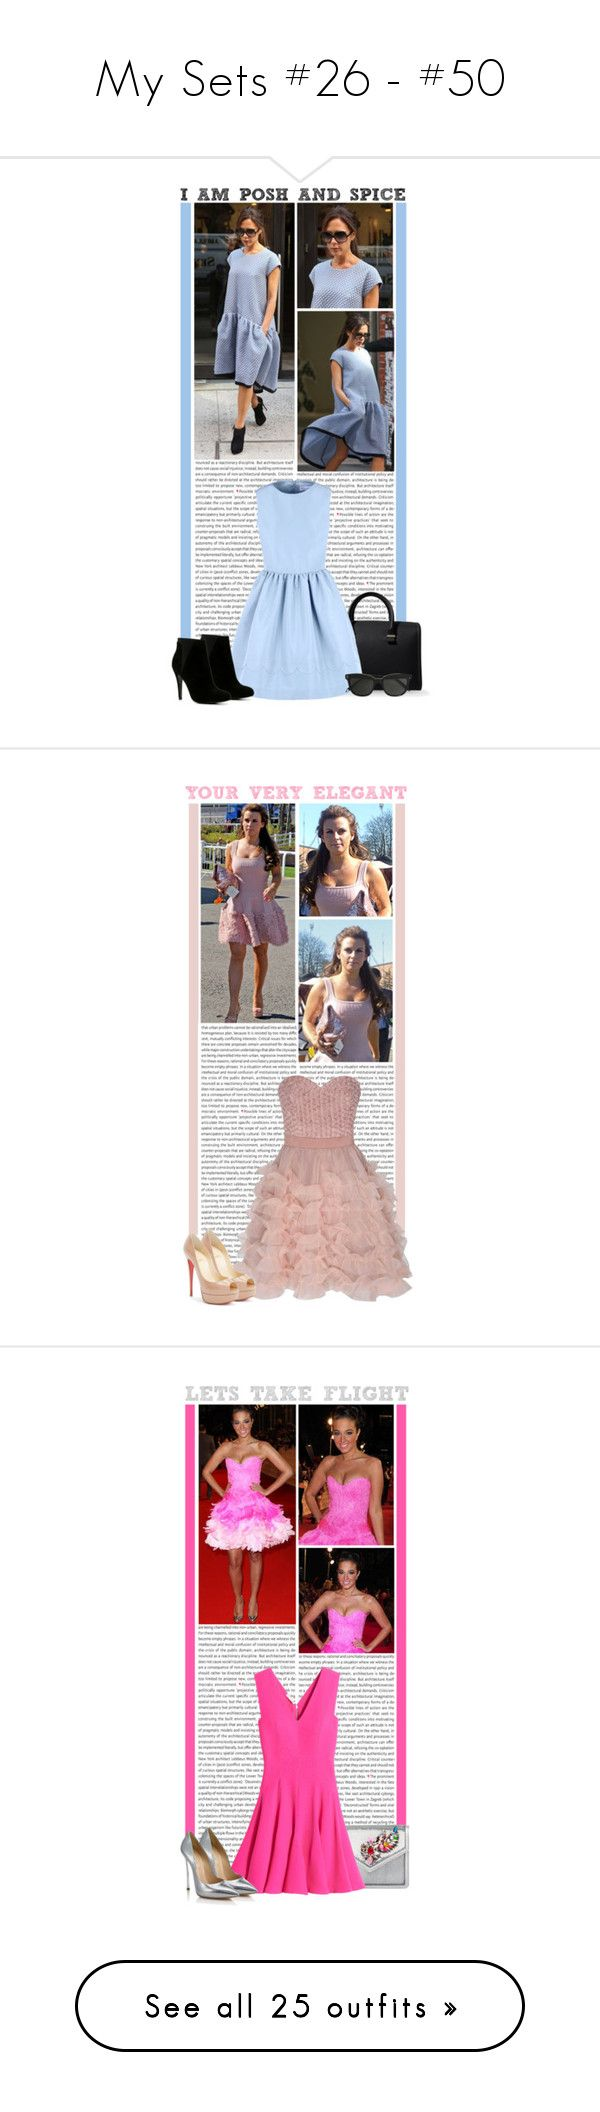 """""""My Sets #26 - #50"""" by lauren1993 ❤ liked on Polyvore featuring Oris, Victoria Beckham, RED Valentino, ALDO, GetTheLook, Blue, celebrity, victoriabeckham, Coleen Rooney and Glamorous"""